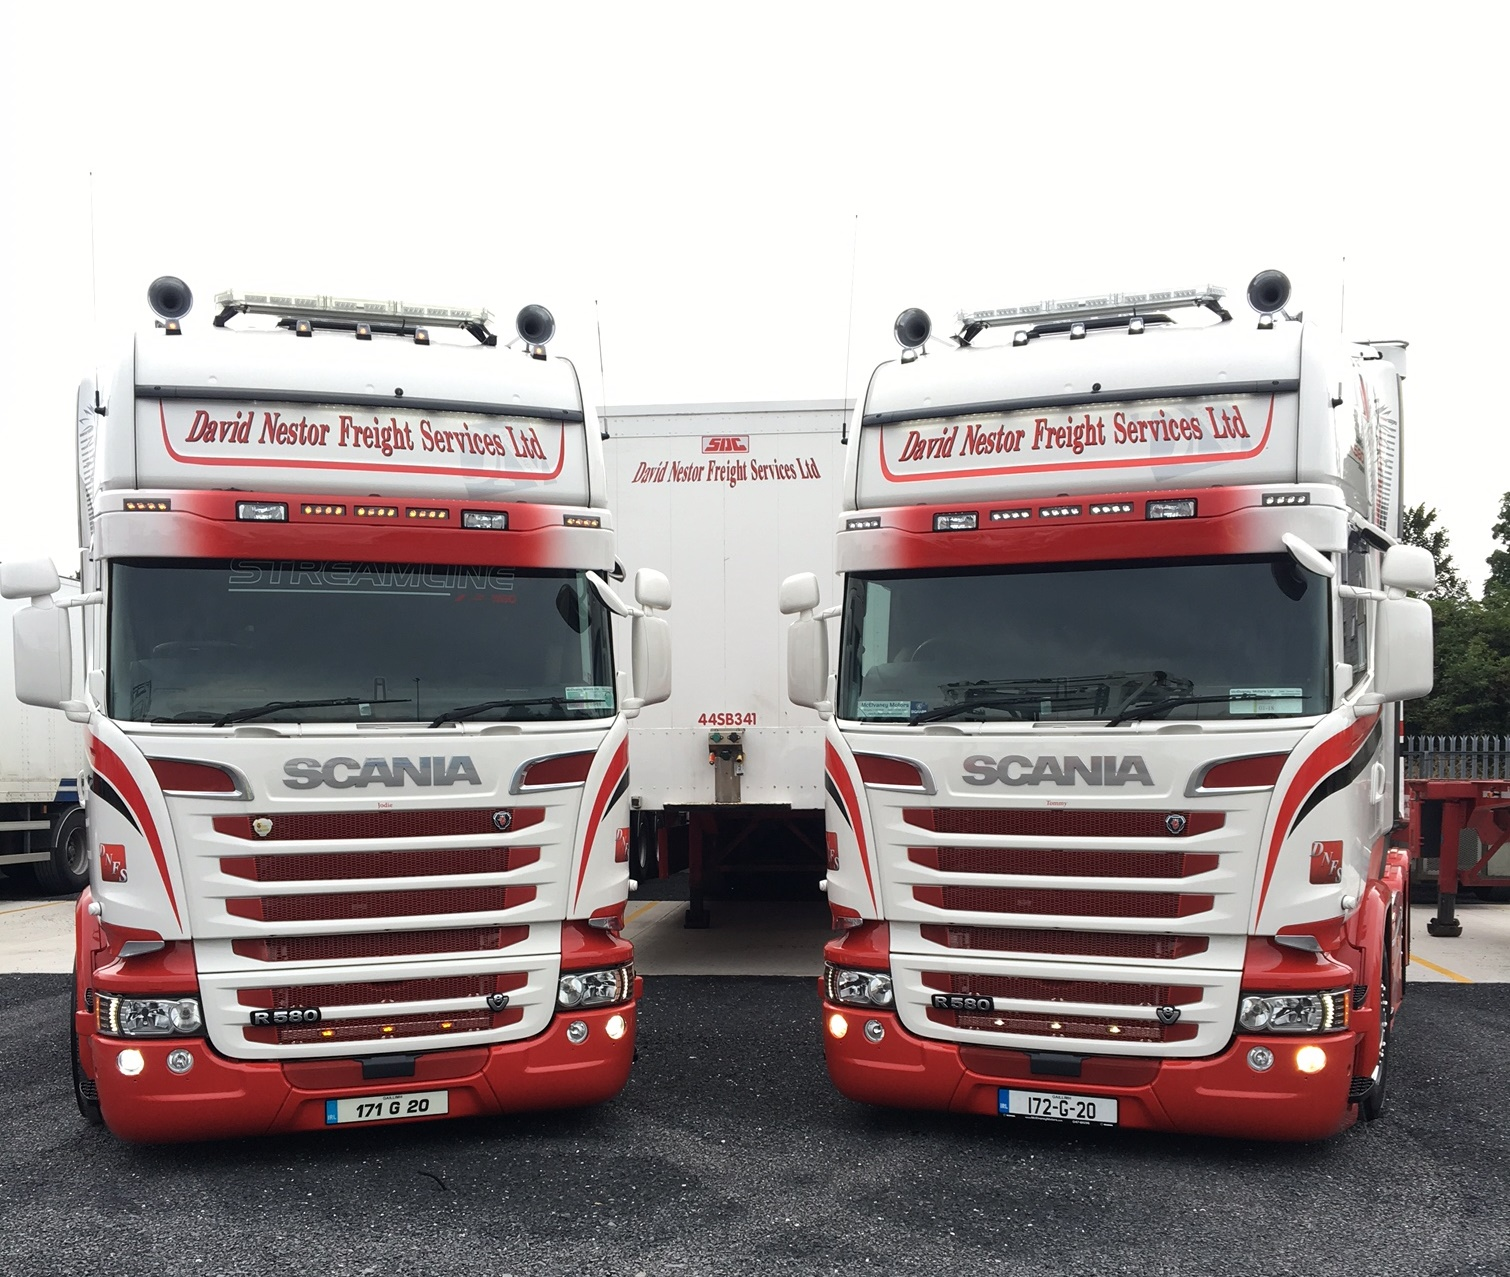 Two New Scania R580s for David Nestor Freight Services This Year